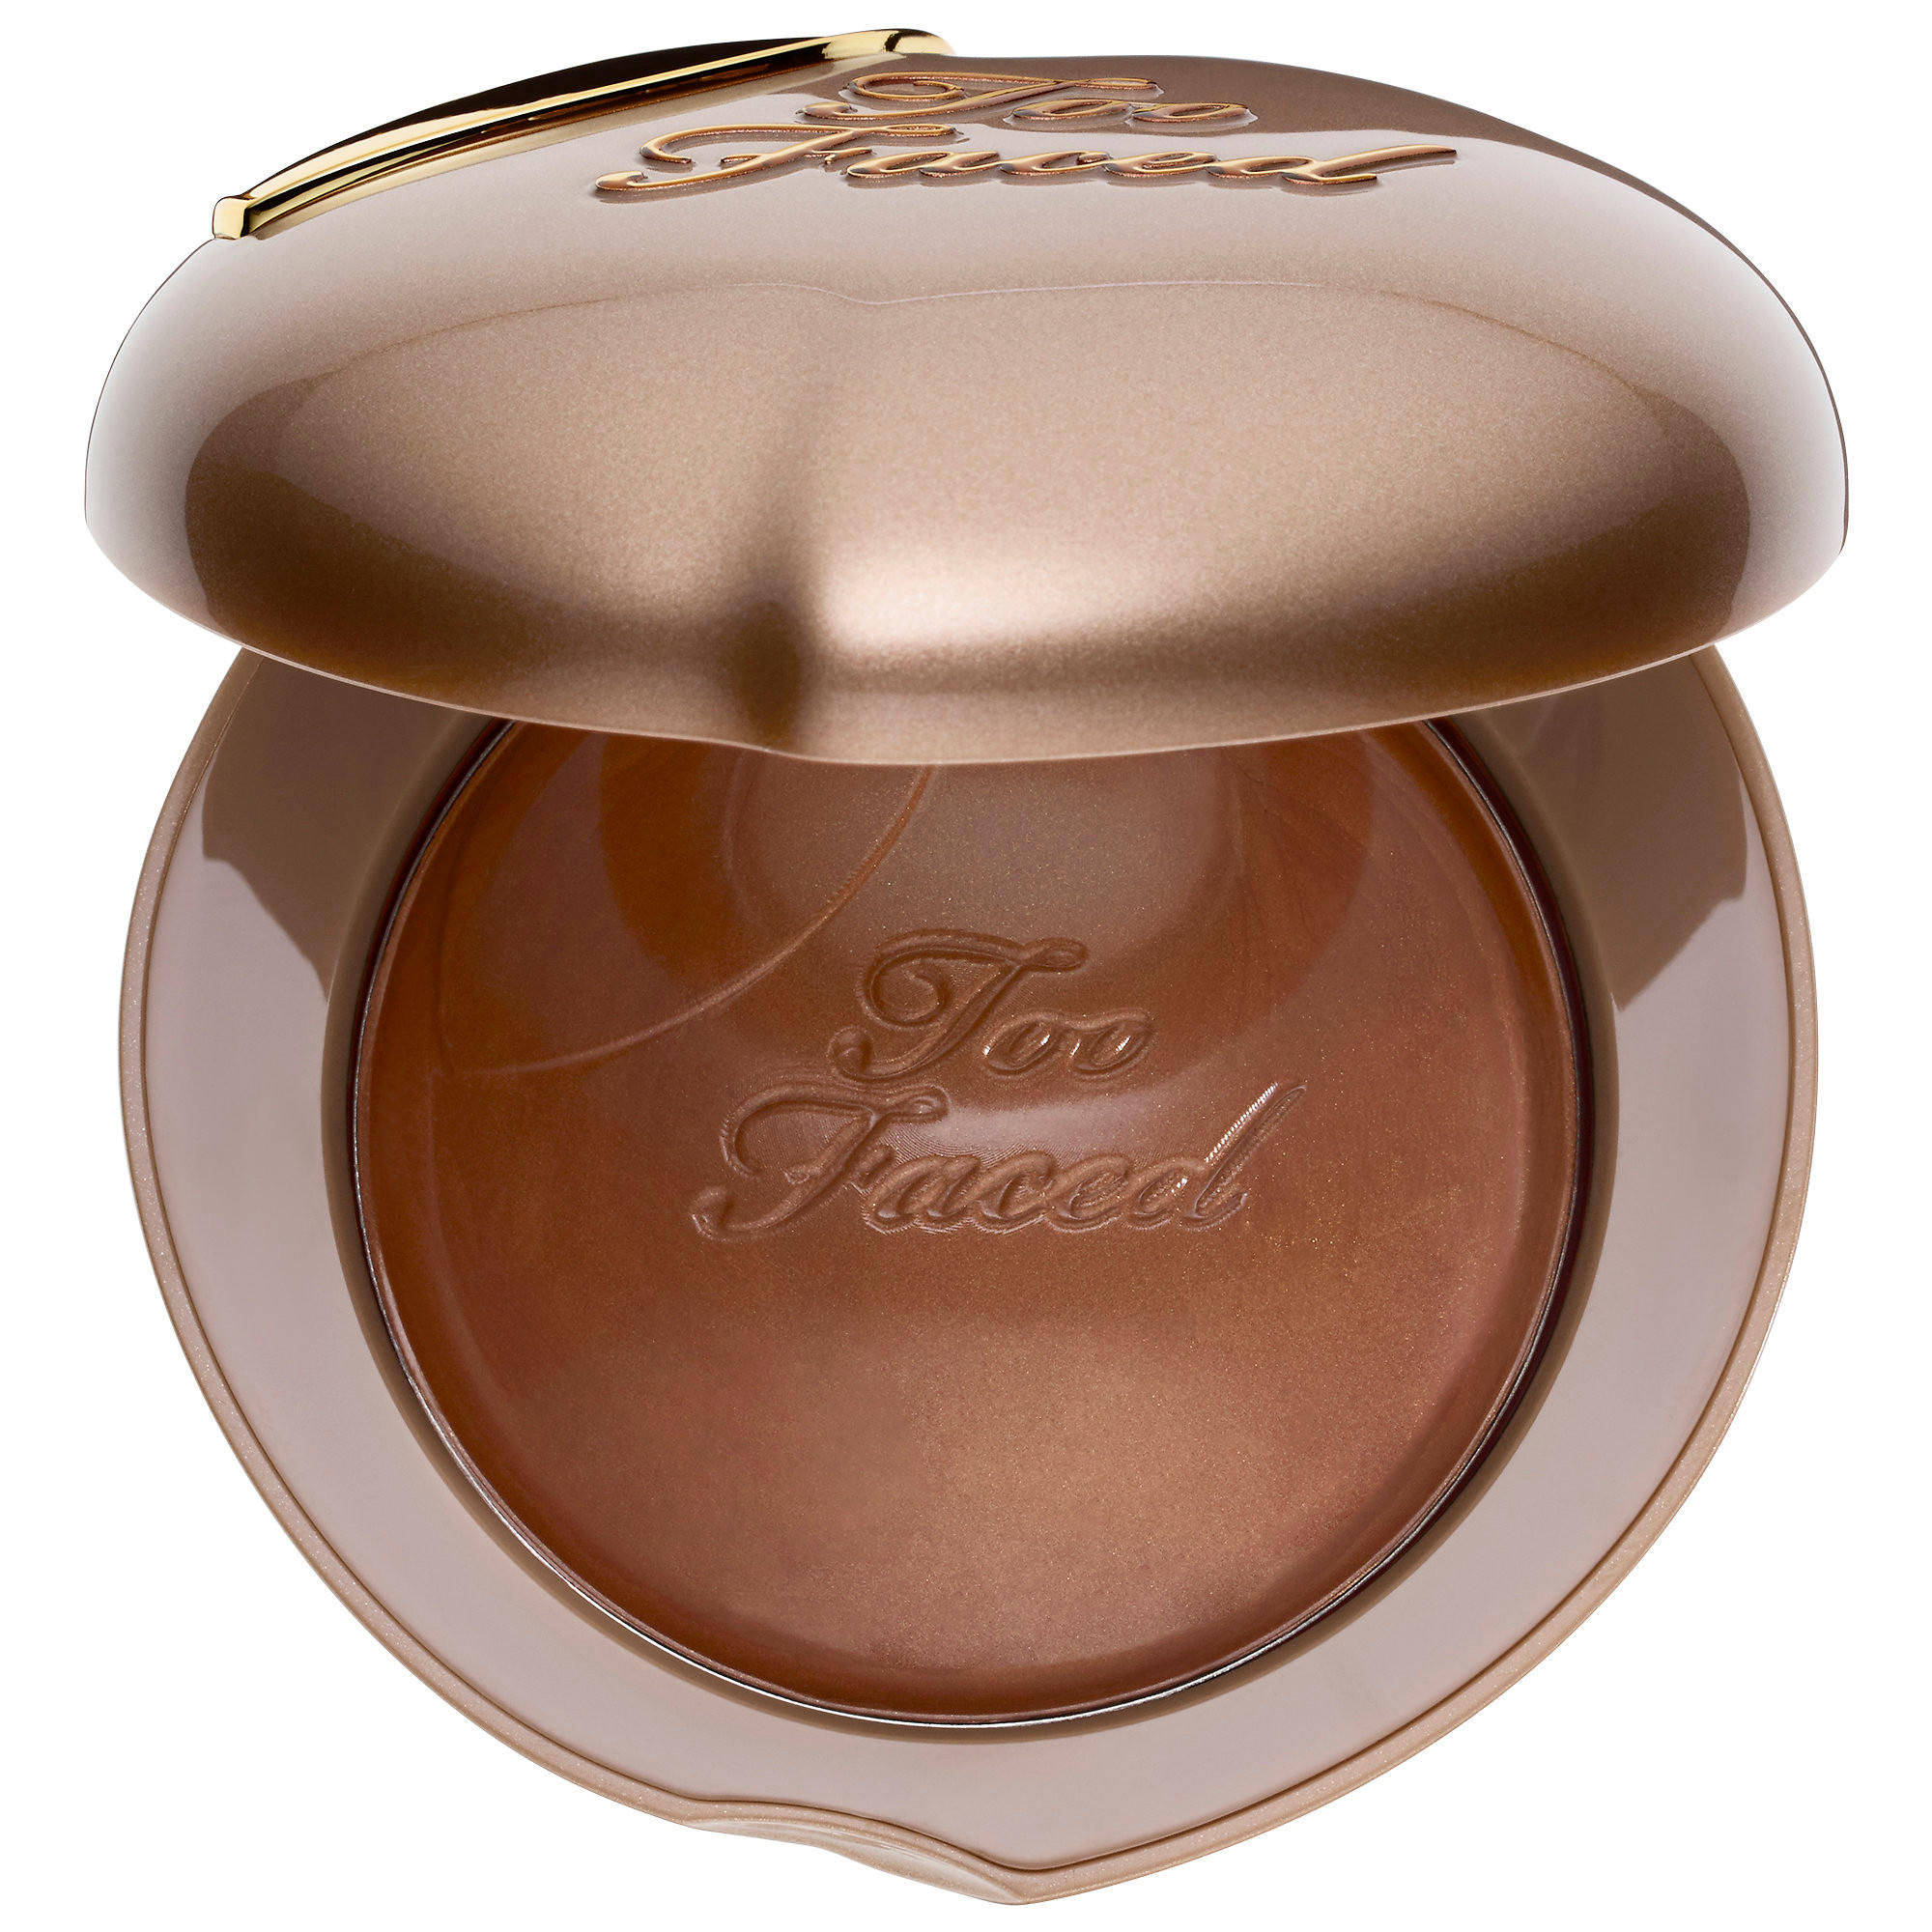 Too Faced Melting Powder Bronzer Toasted Peach